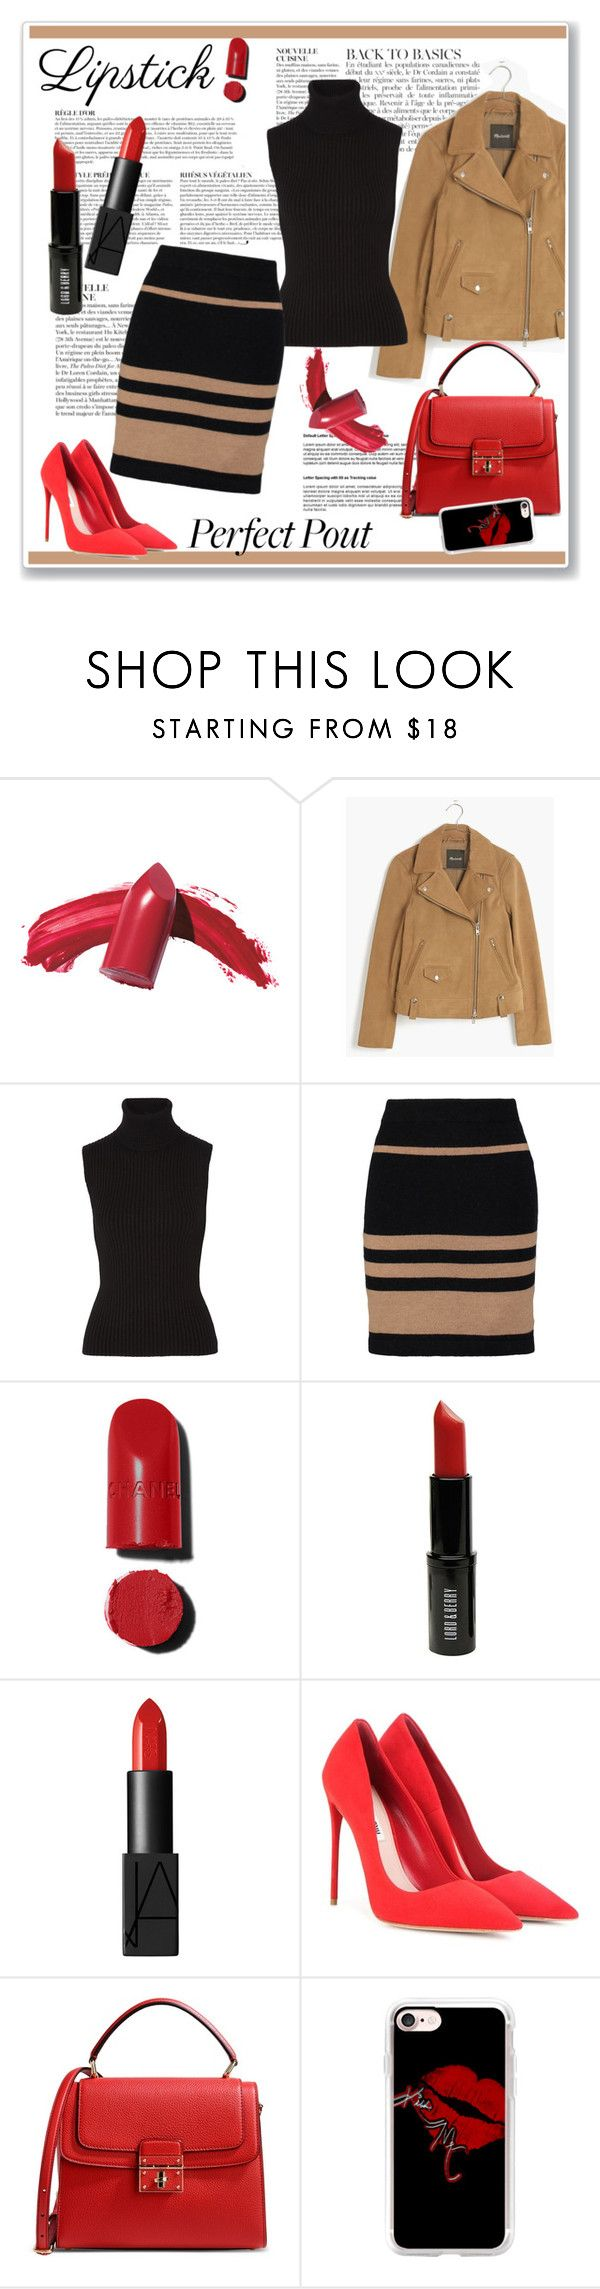 """""""Red lipstick"""" by ruza-b-s ❤ liked on Polyvore featuring beauty, Anja, Elizabeth Arden, Madewell, Michael Kors, James Perse, Chanel, Lord & Berry, NARS Cosmetics and Miu Miu"""